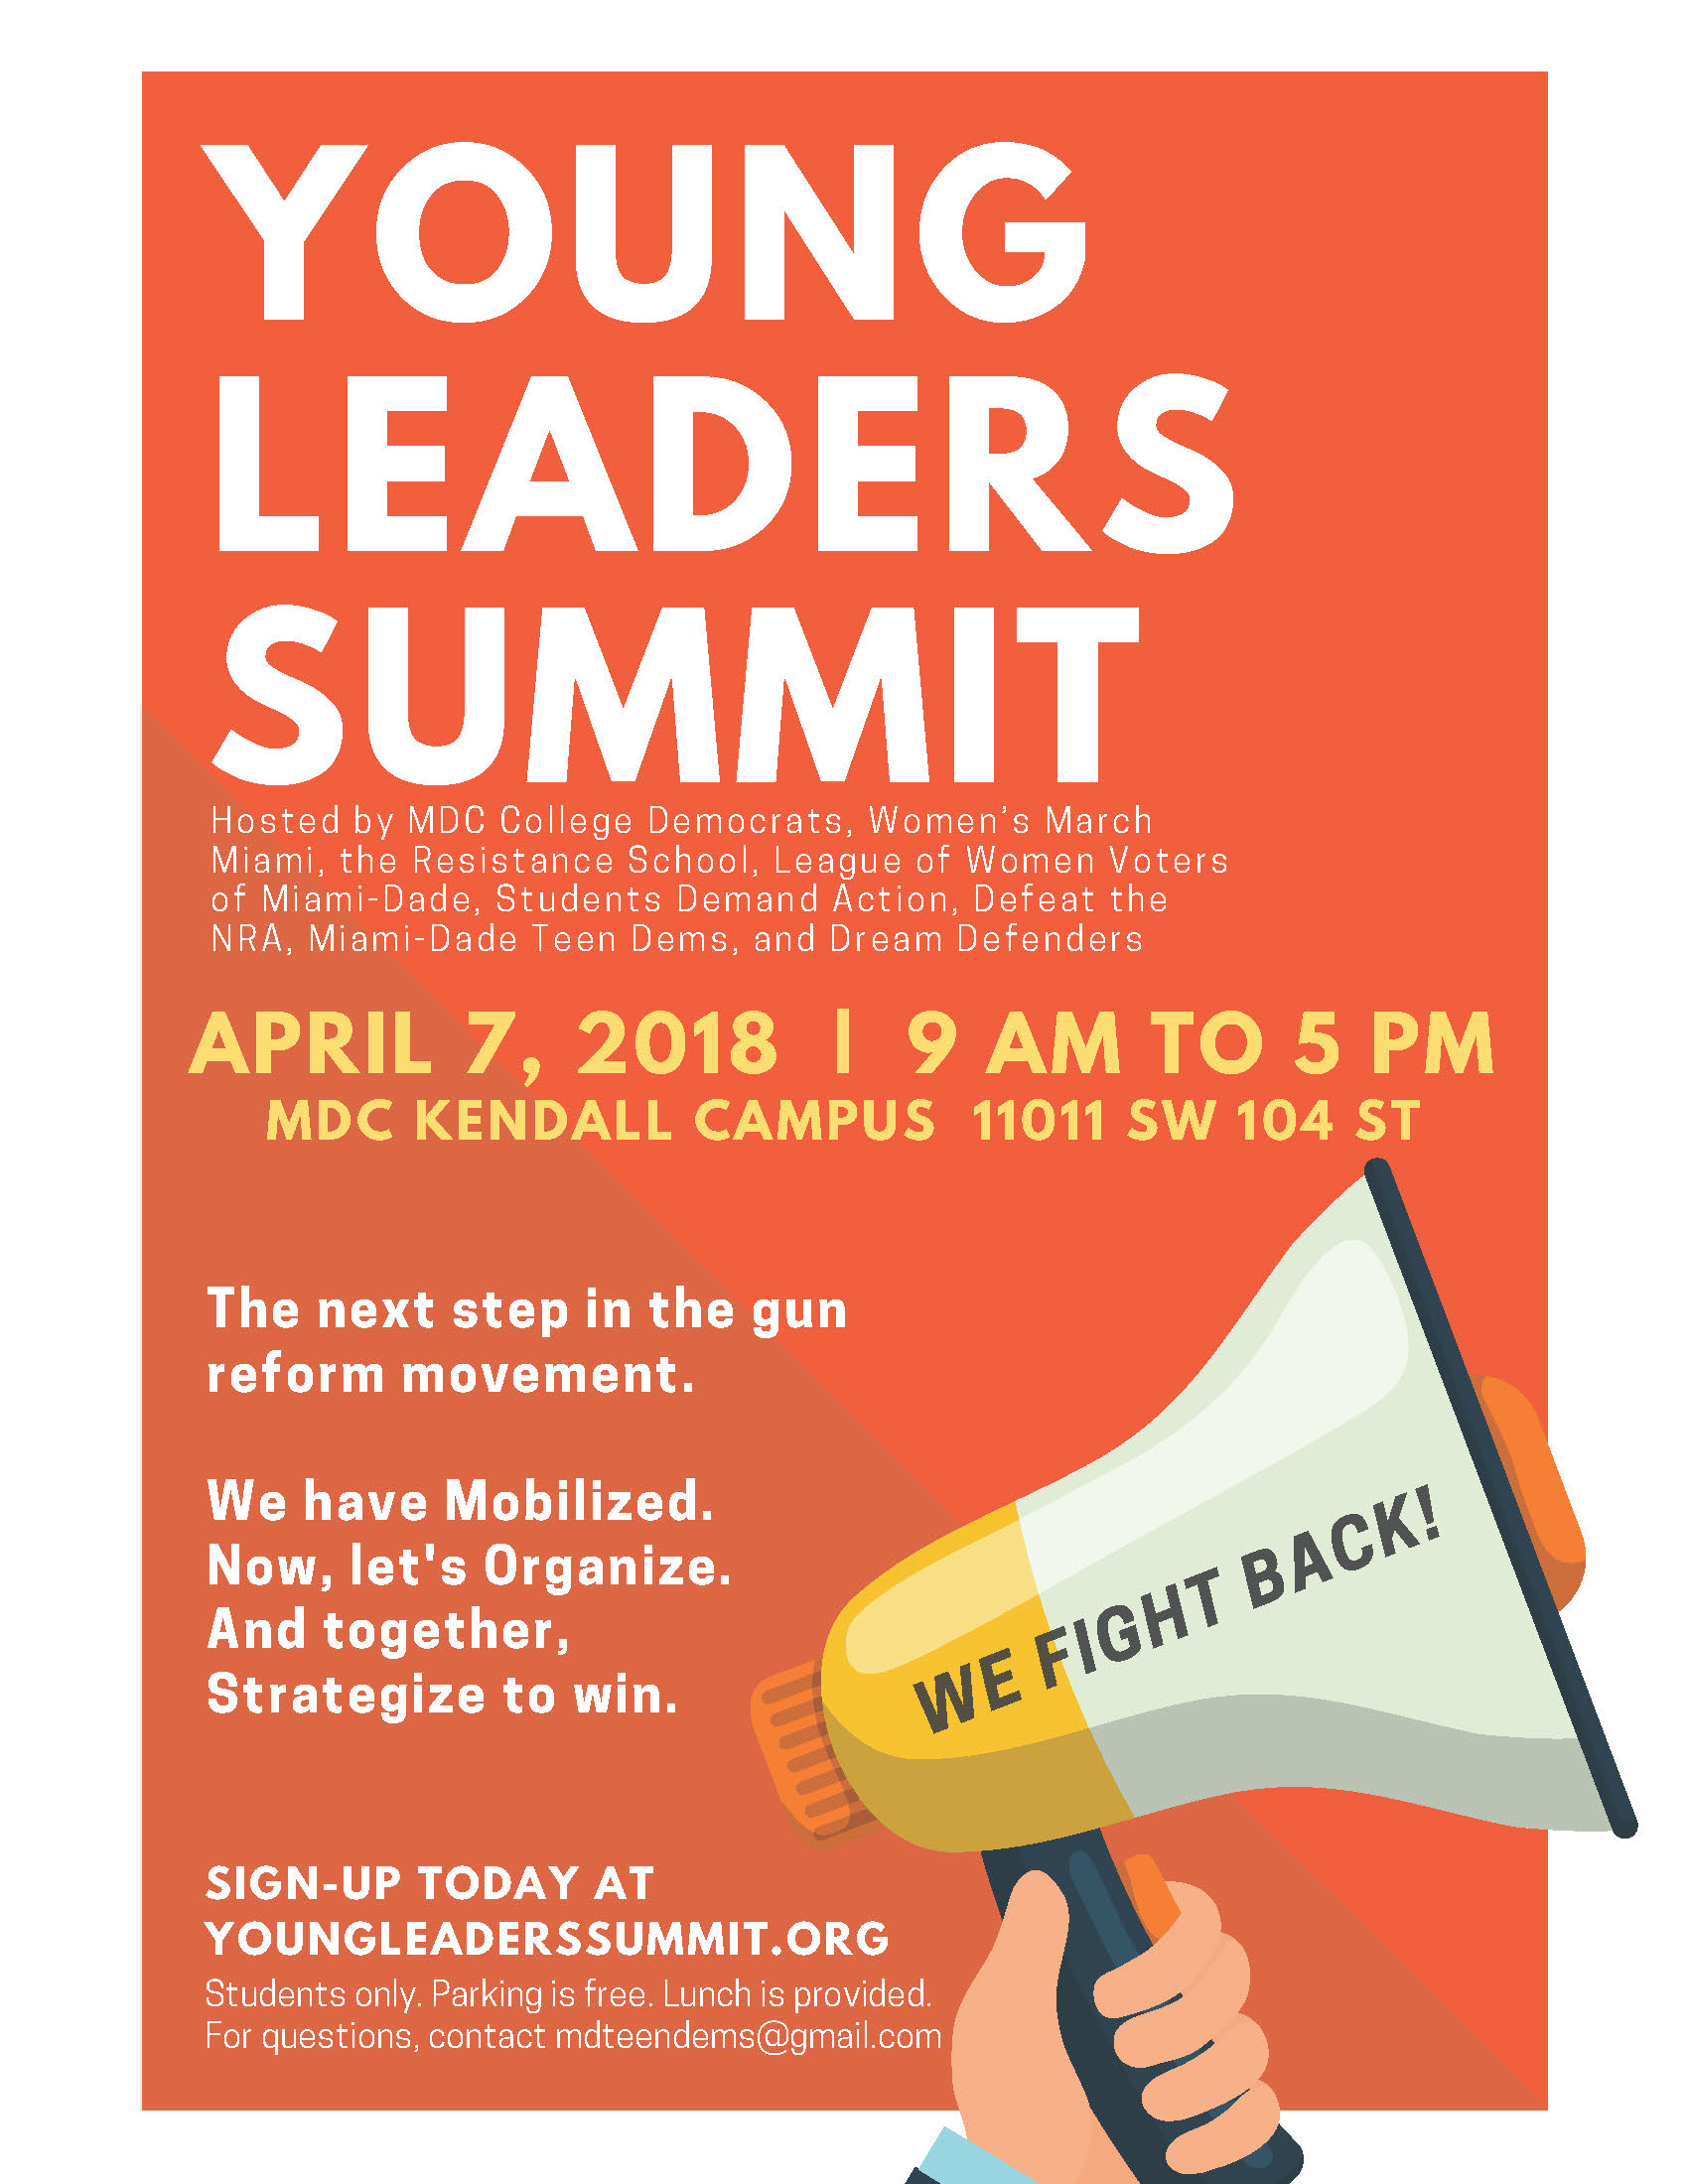 Young_Leaders_Summit_flyer_revised_print_version_3_27.jpg